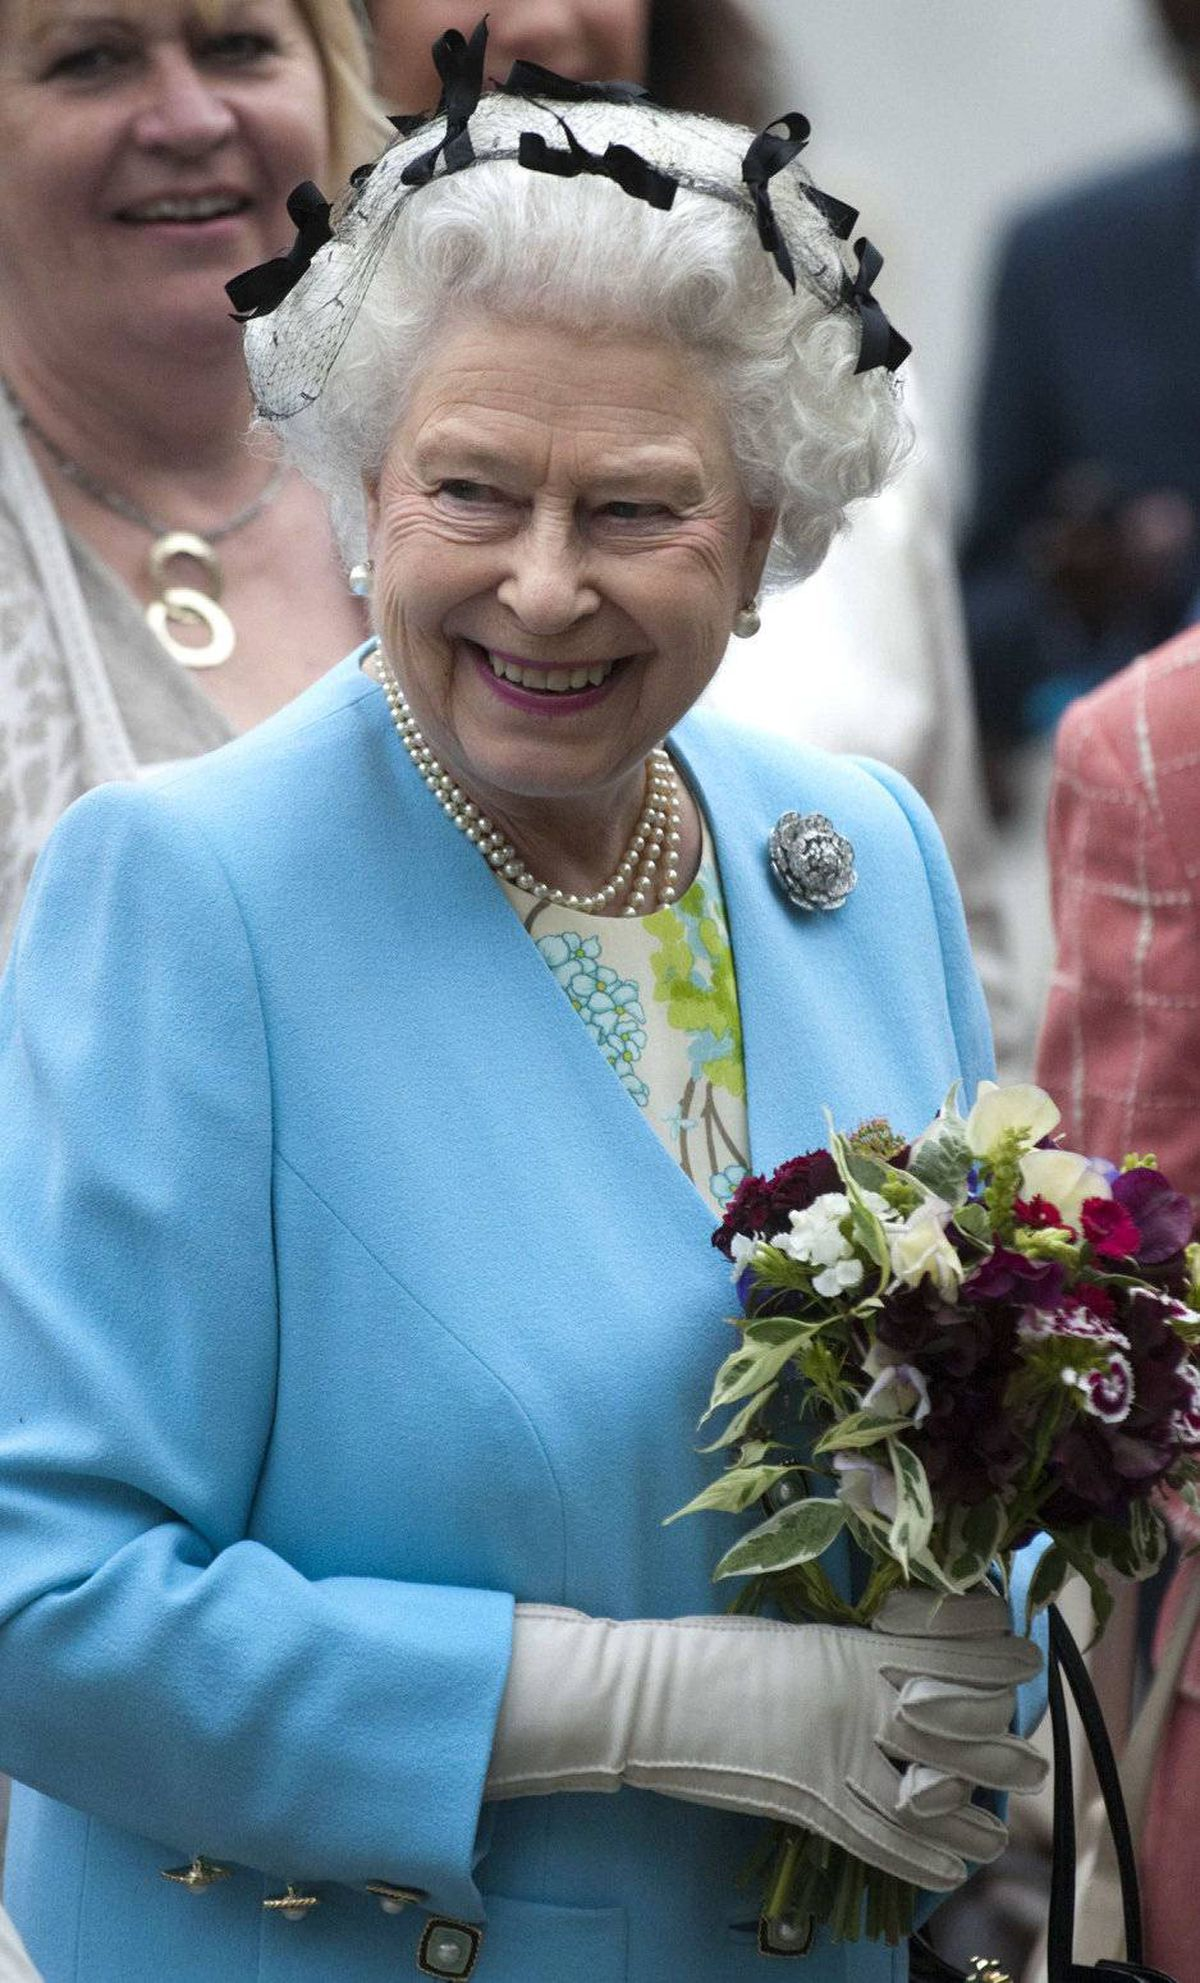 Britain's Queen Elizabeth II tours the Chelsea Flower Show on press day, in central London May 23, 2011. Picture taken May 23, 2011.